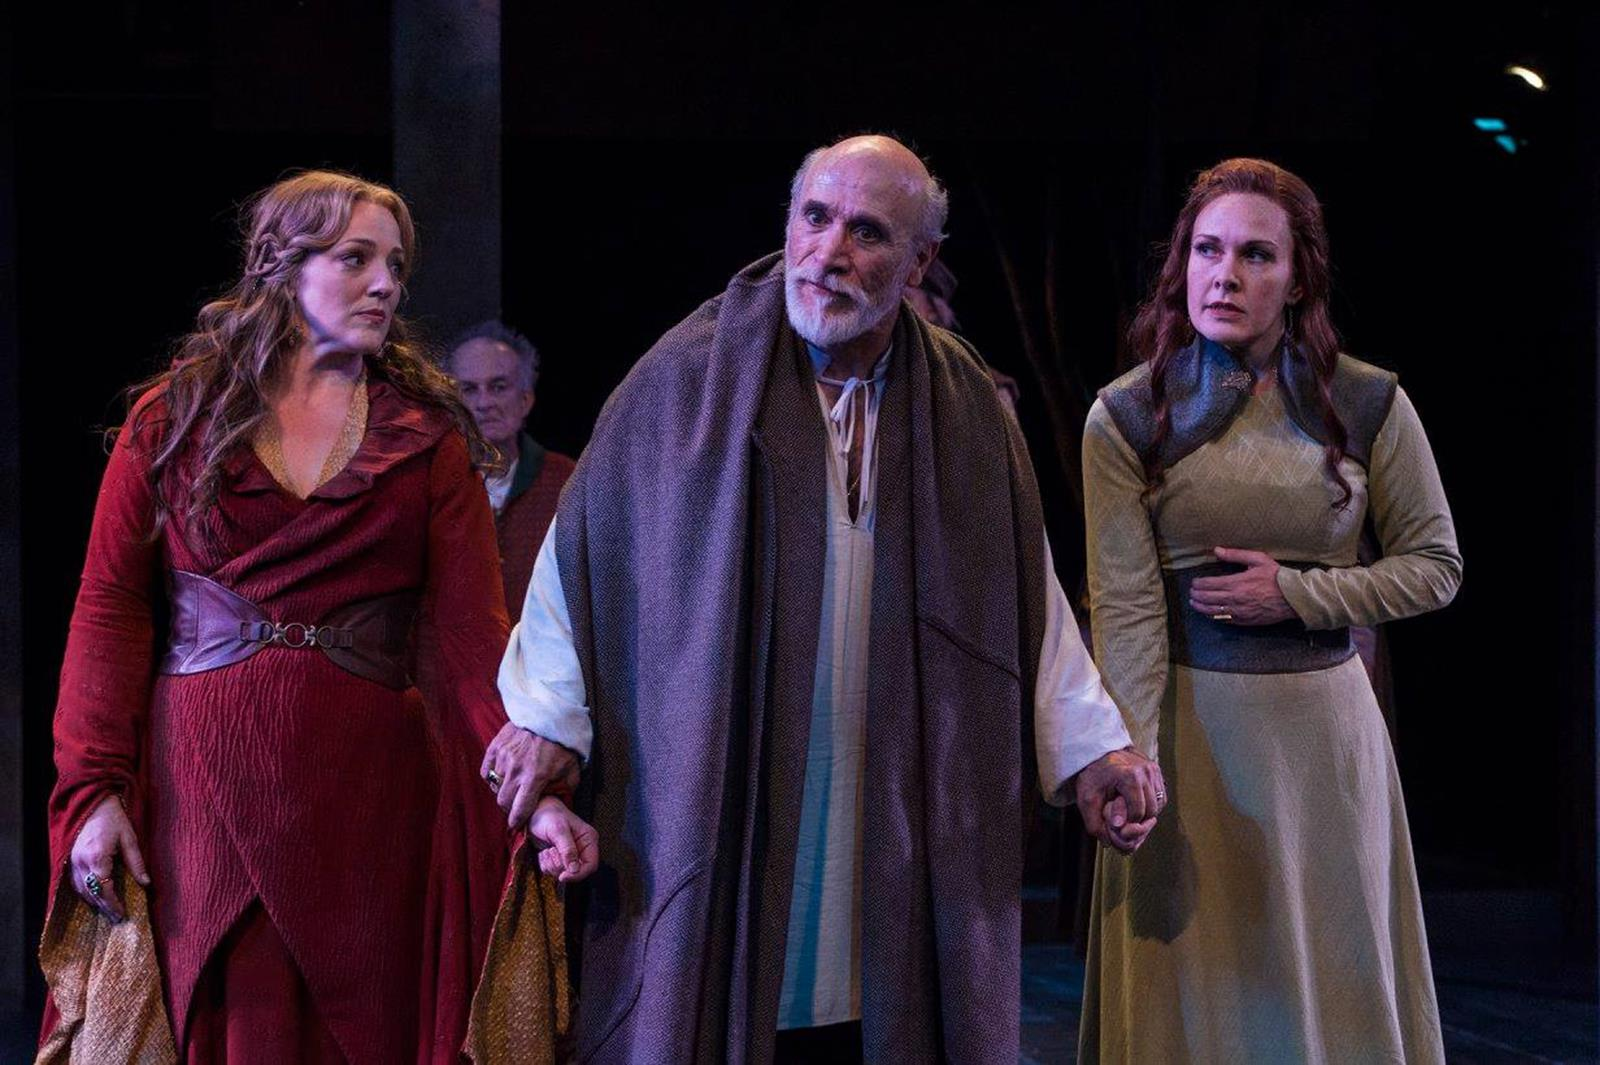 A scene from King Lear. Credit: Utah Shakespeare Festival